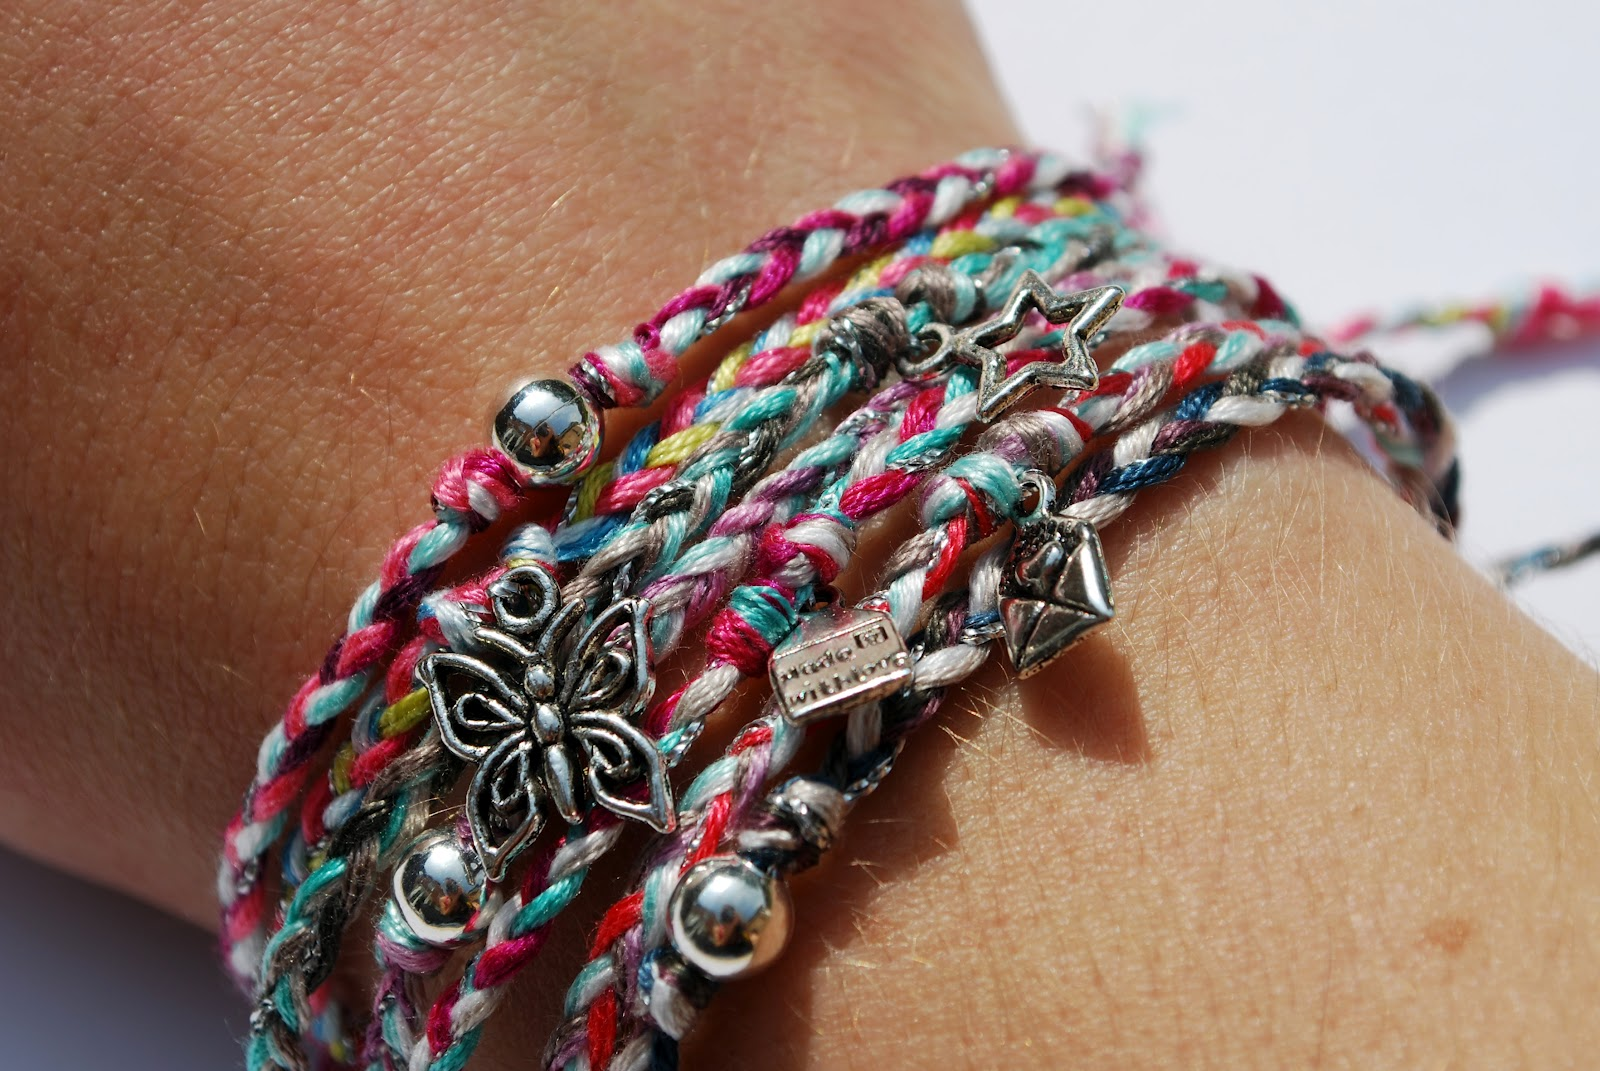 Below Are A Couple Of Special Bracelets That I Wanted To Feature  Individually, First, A Pink Friendship Bracelet With Hope Ribbon Charm, $1  From Each Sale